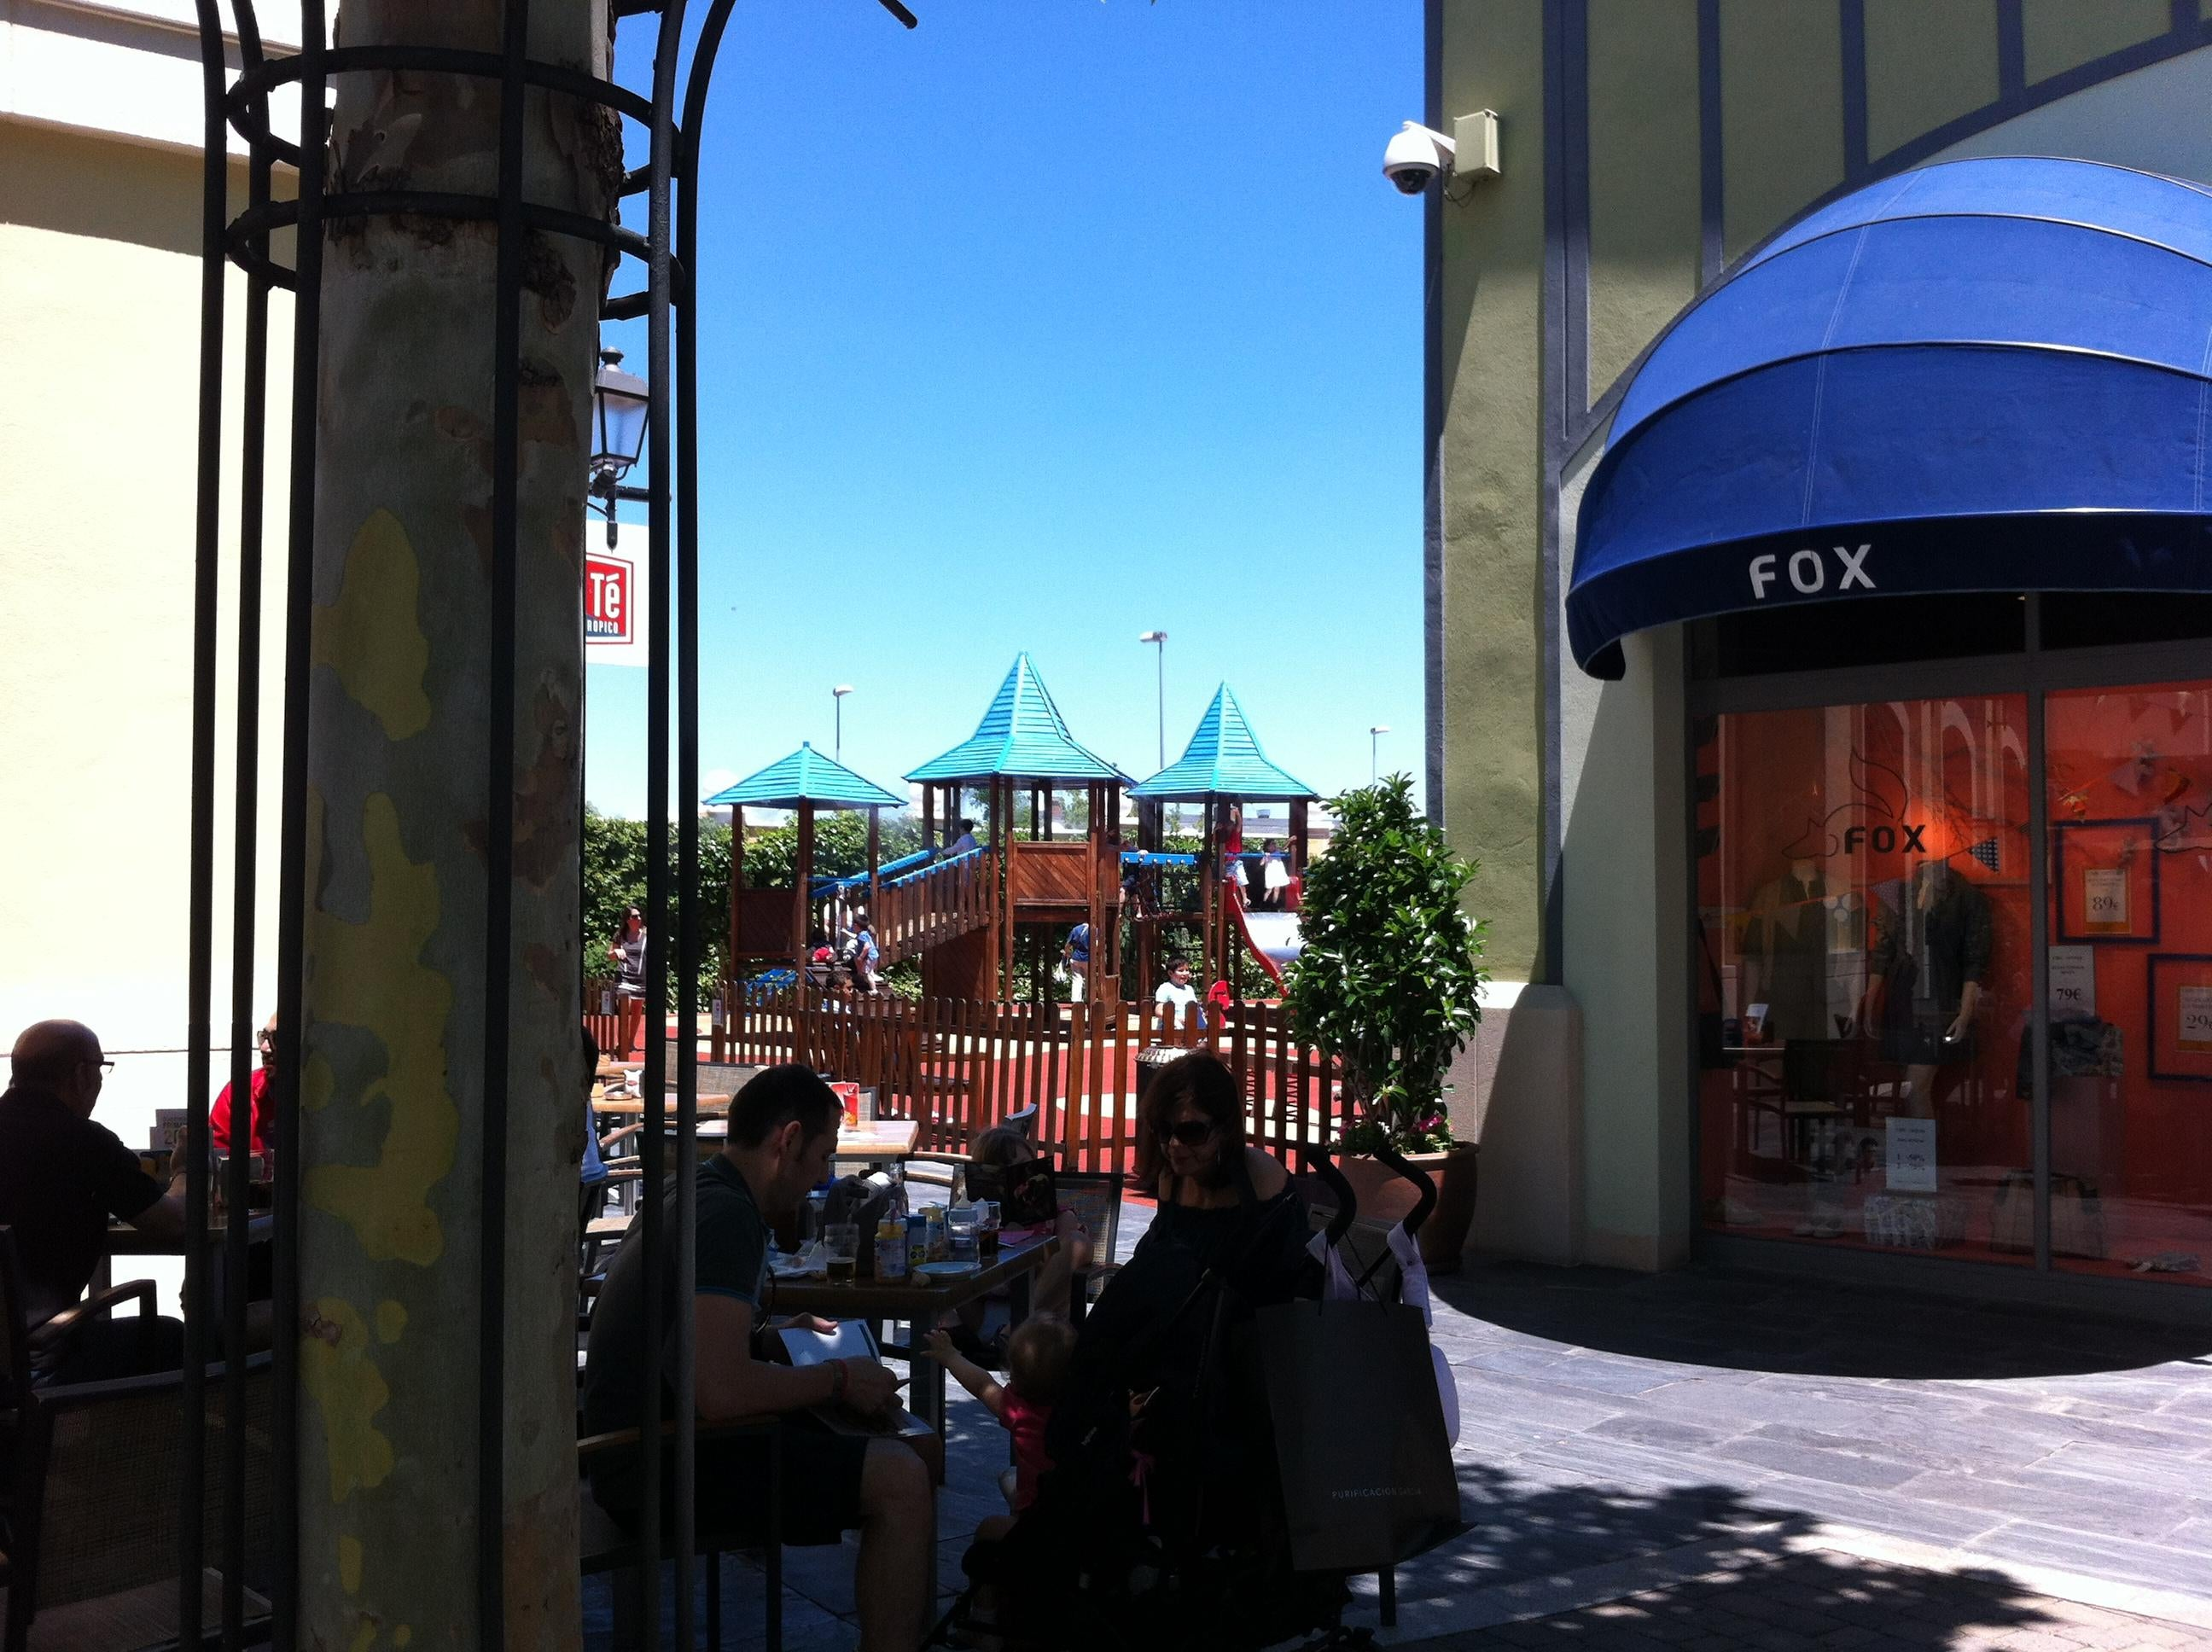 Anochecer en Las Rozas Village outlet shopping